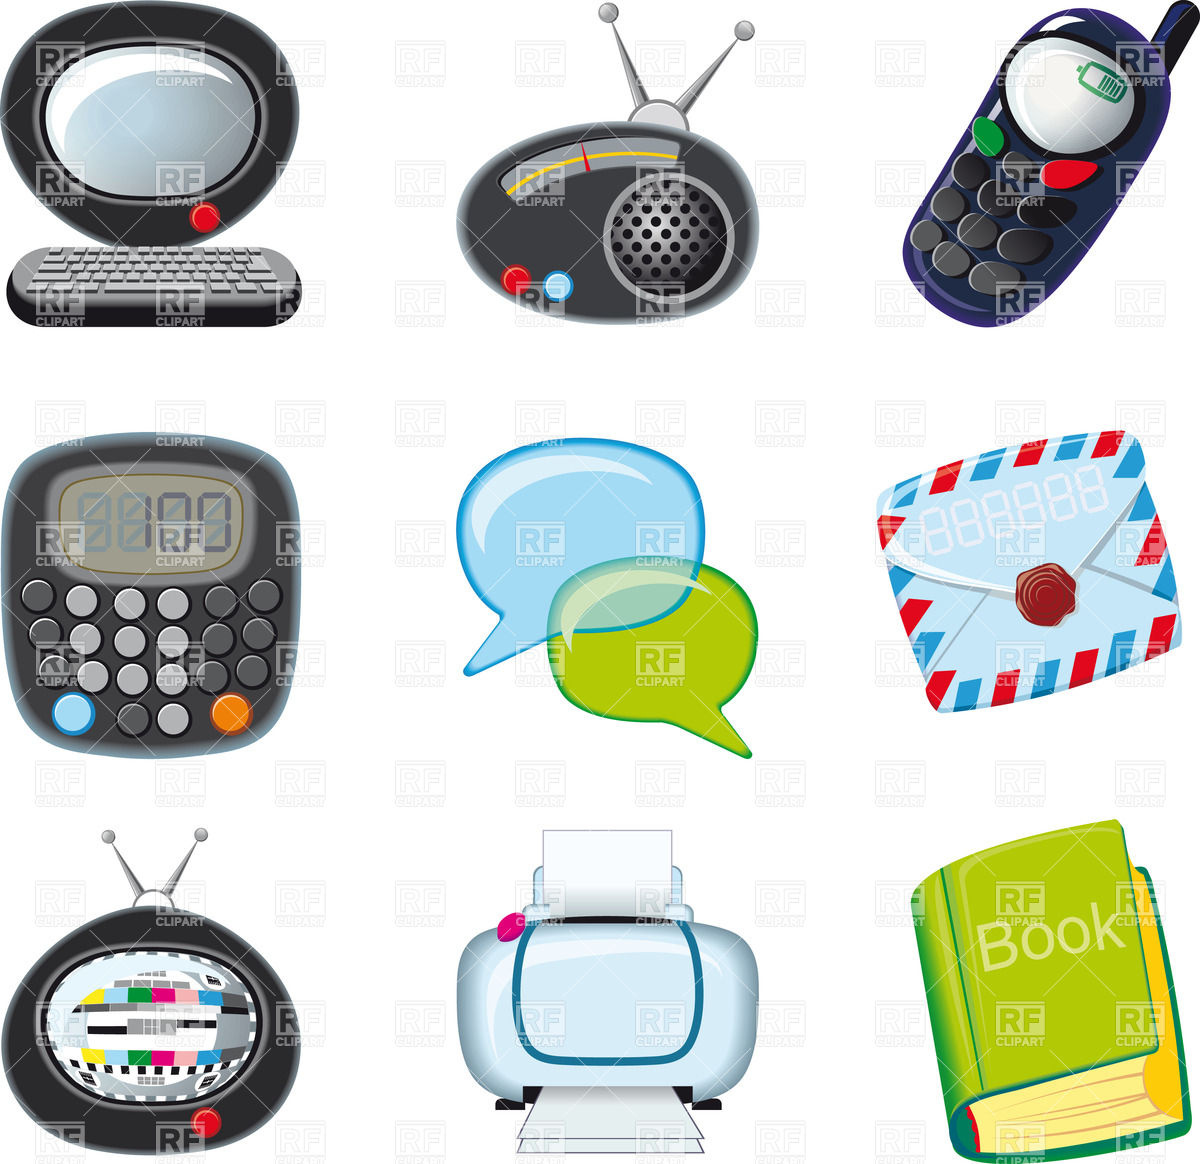 Home And Office Electronics Cartoon Icons 25158 Technology Download